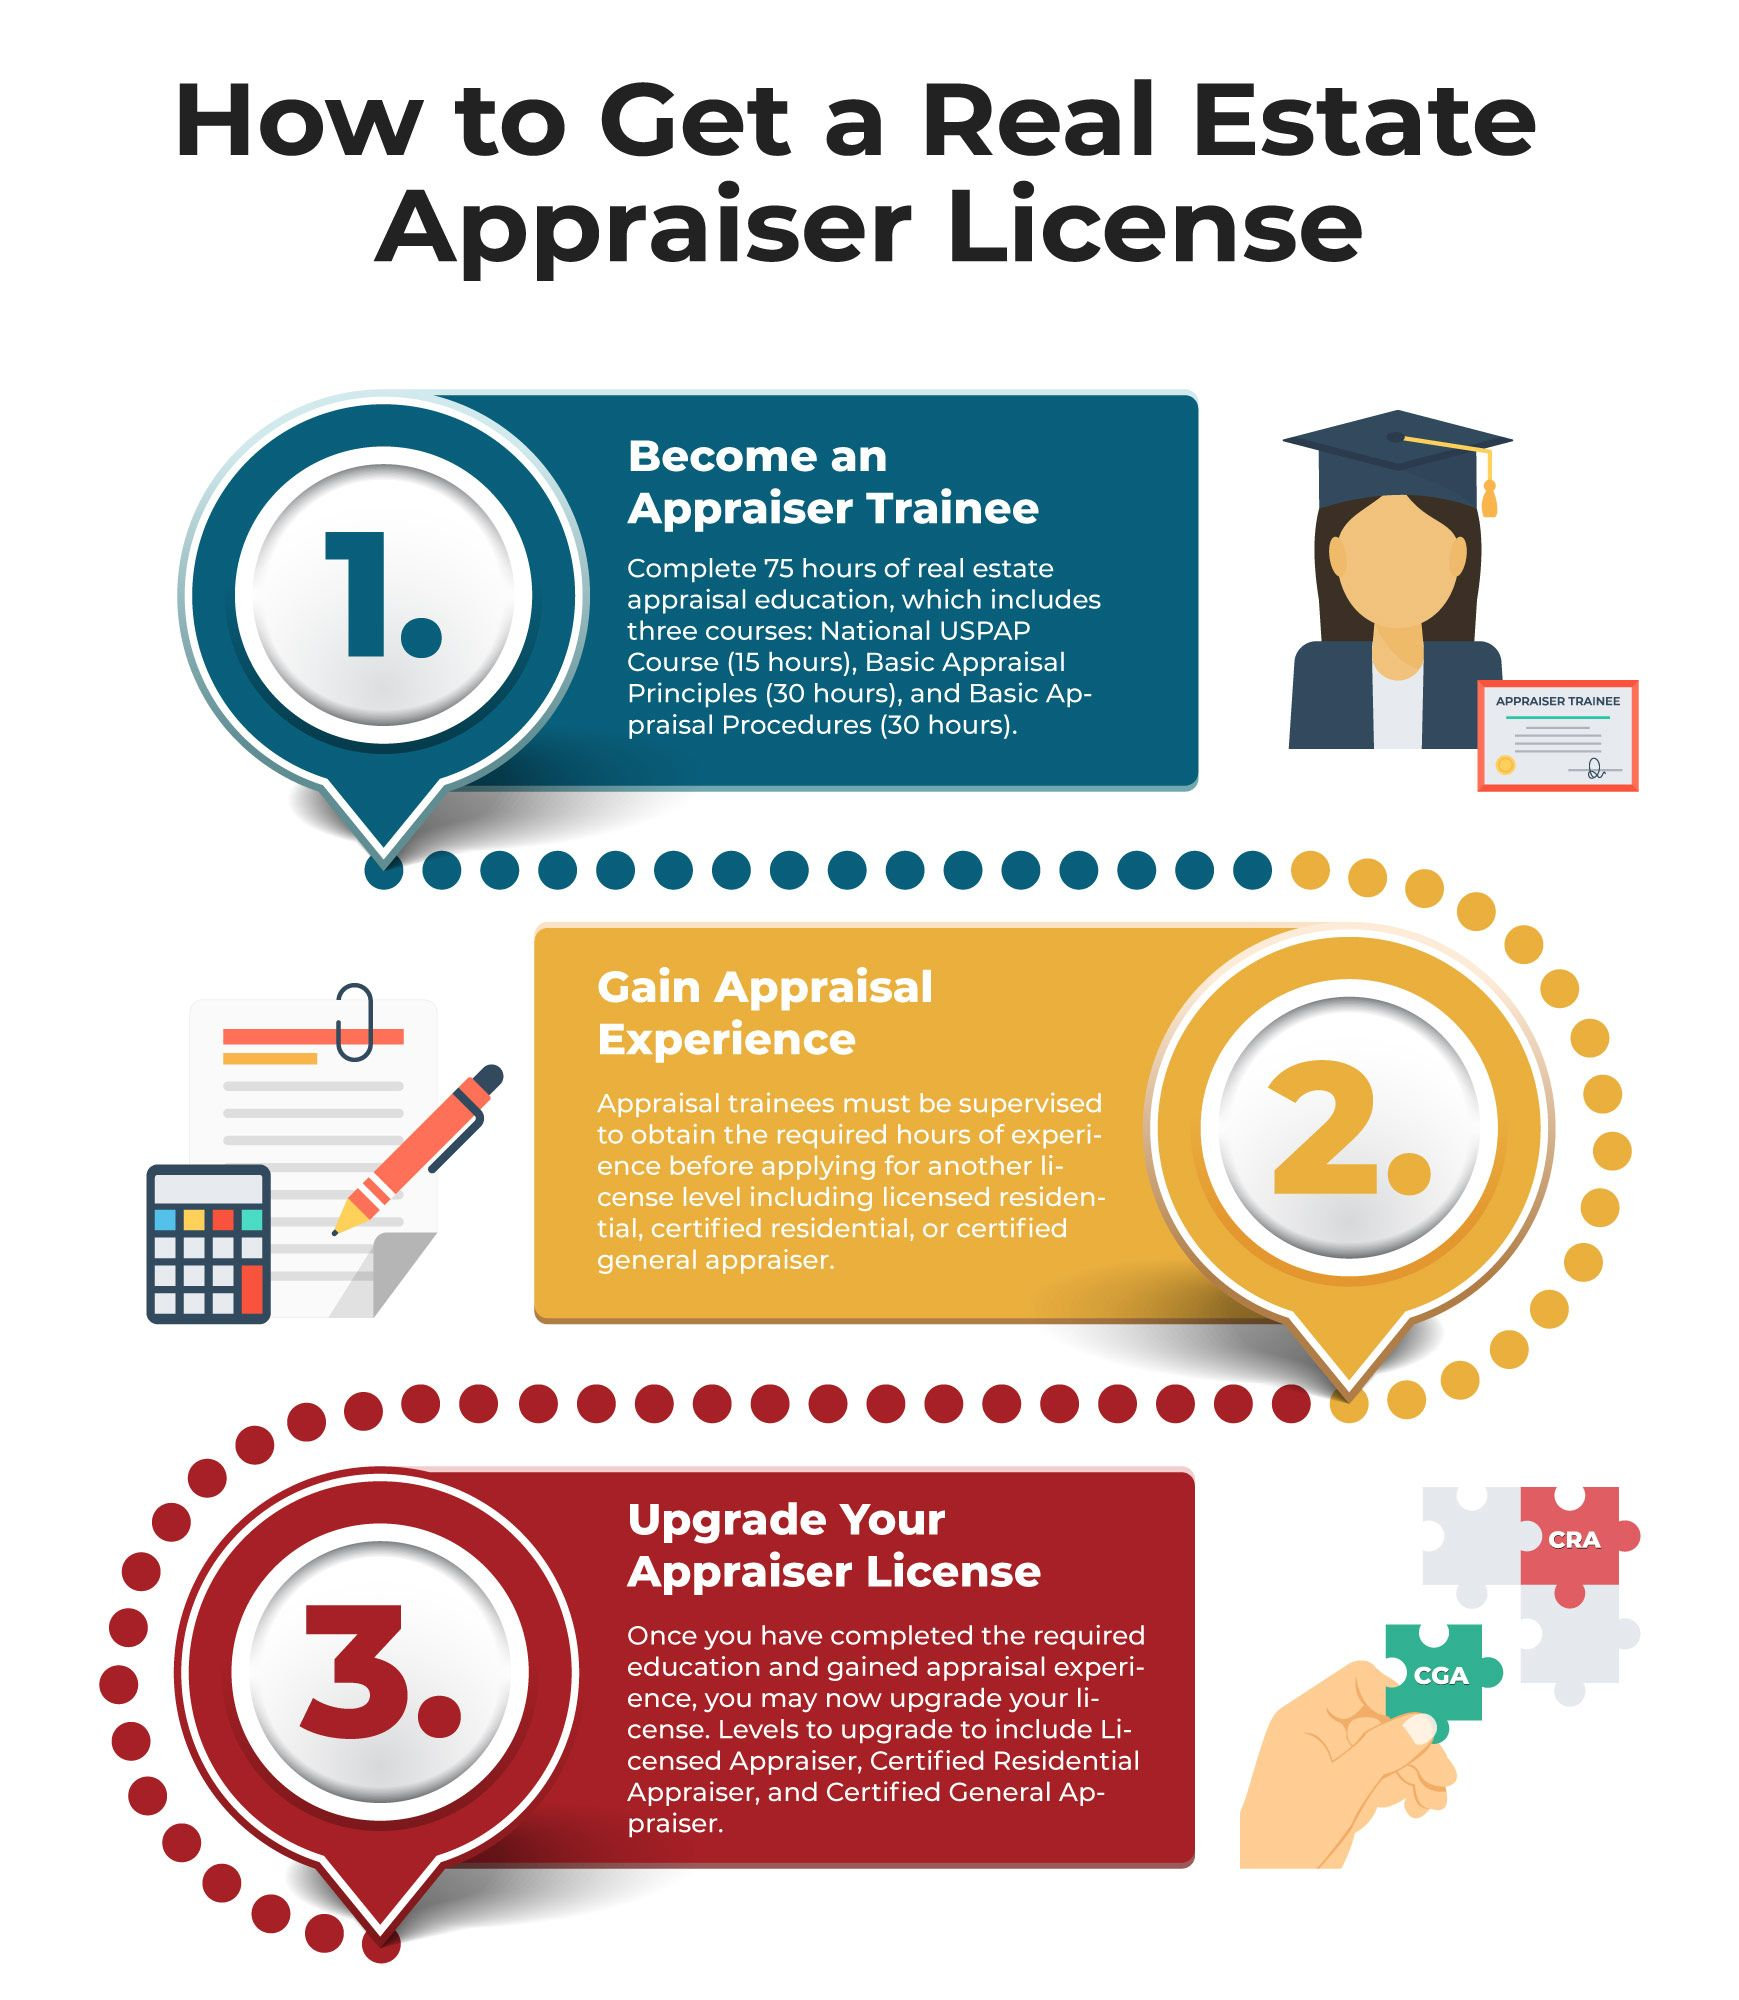 How To Get A Real Estate Appraiser License Real Estate Infographic Real Estate Infographic Real Estate Courses Infographic